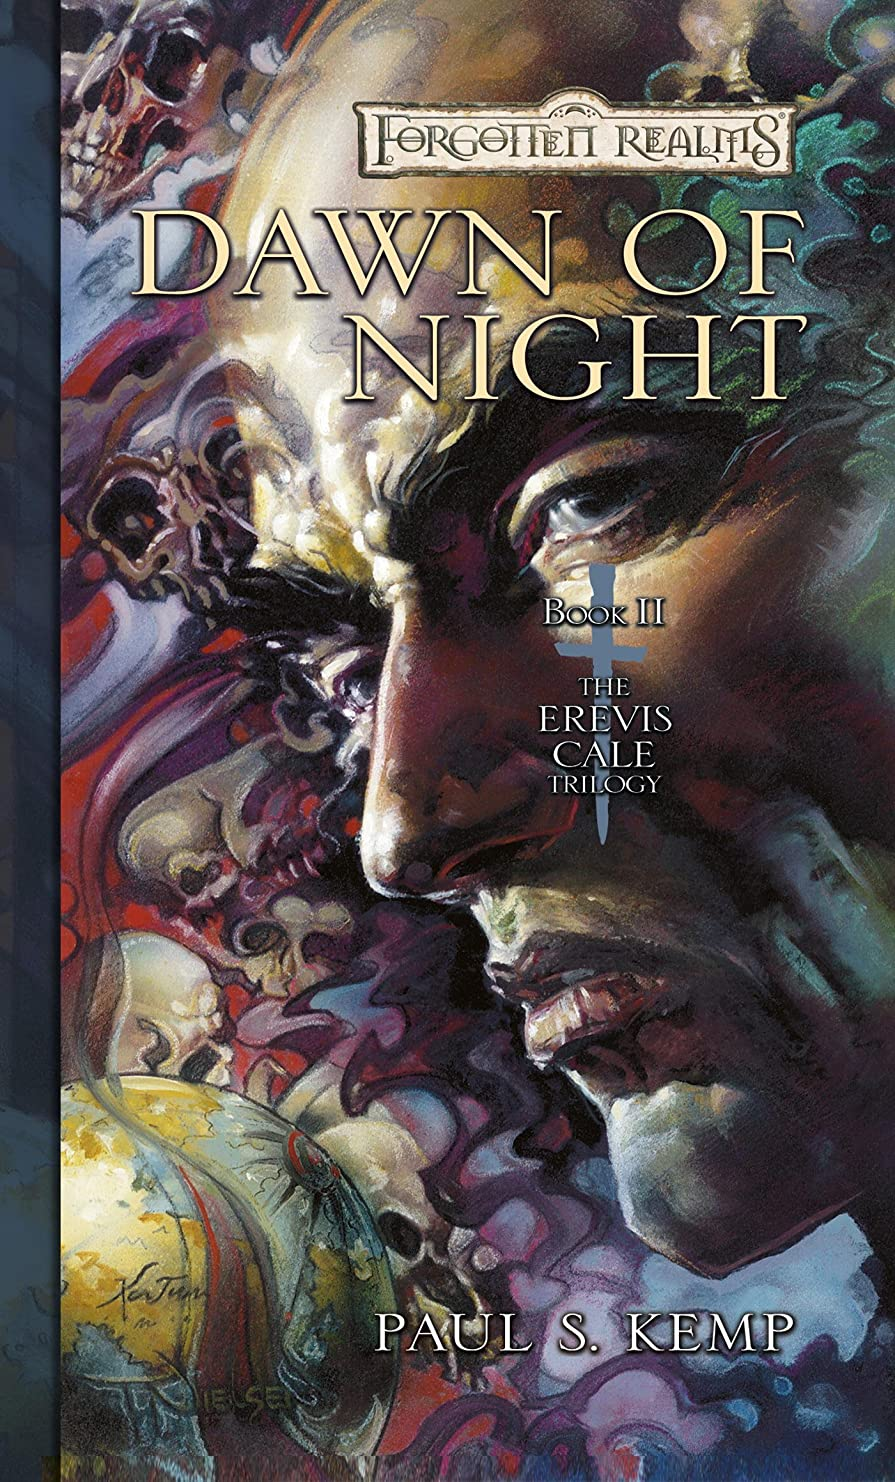 処理引き出すサスペンドDawn of Night: The Erevis Cale Trilogy, Book II (English Edition)